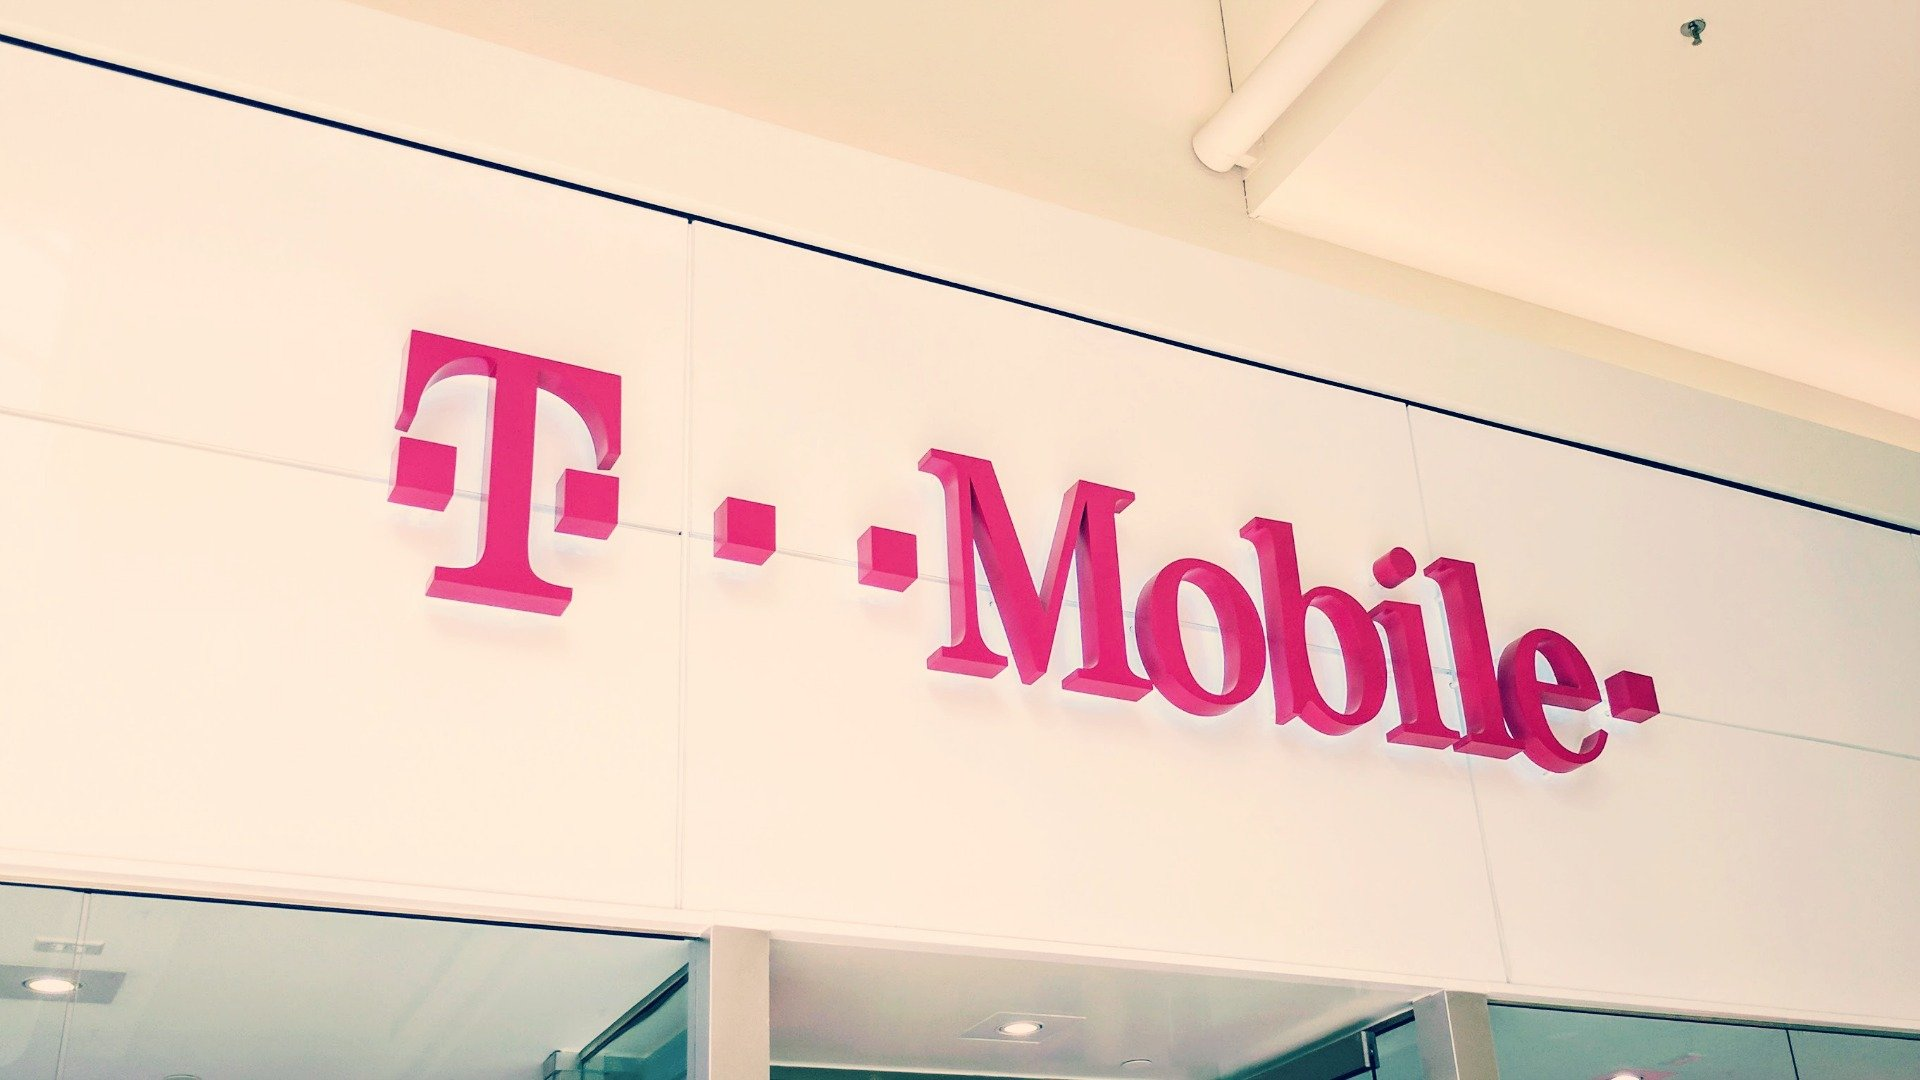 COVID-19 T-Mobile to provide unlimited data for 60 days